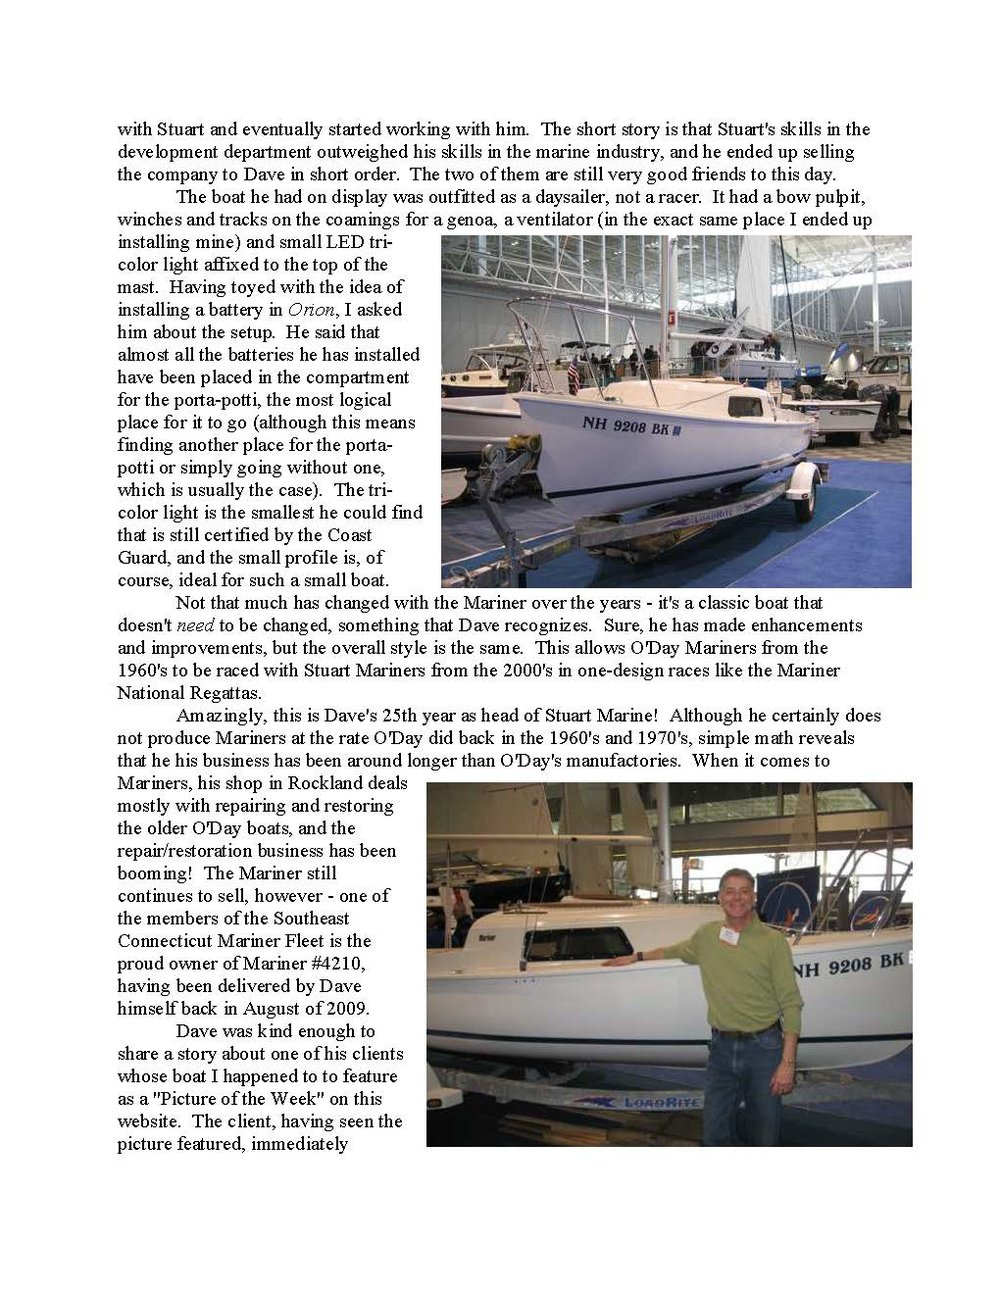 Stuart+Marine+at+the+2010+Boston+Boat+Show_Page_2.jpg